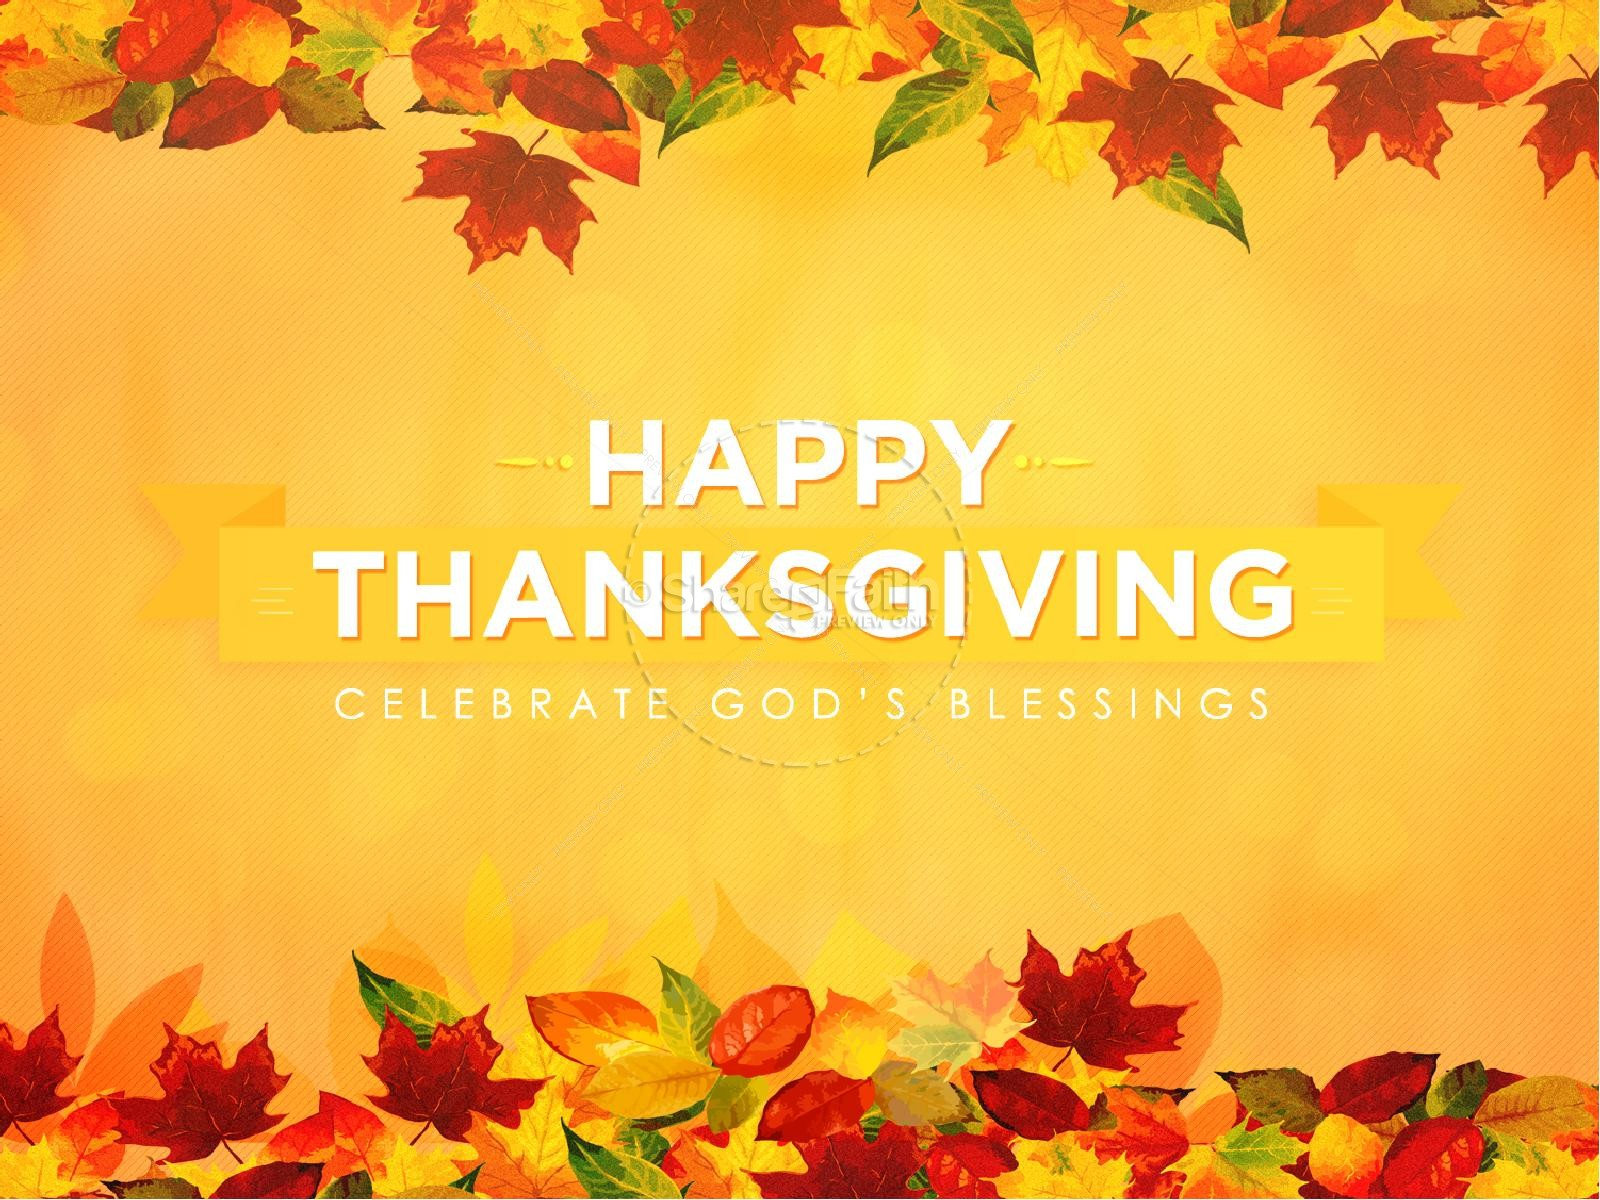 Happy Thanksgiving Blessings Sermon Powerpoint Fall Thanksgiving Powerpoints